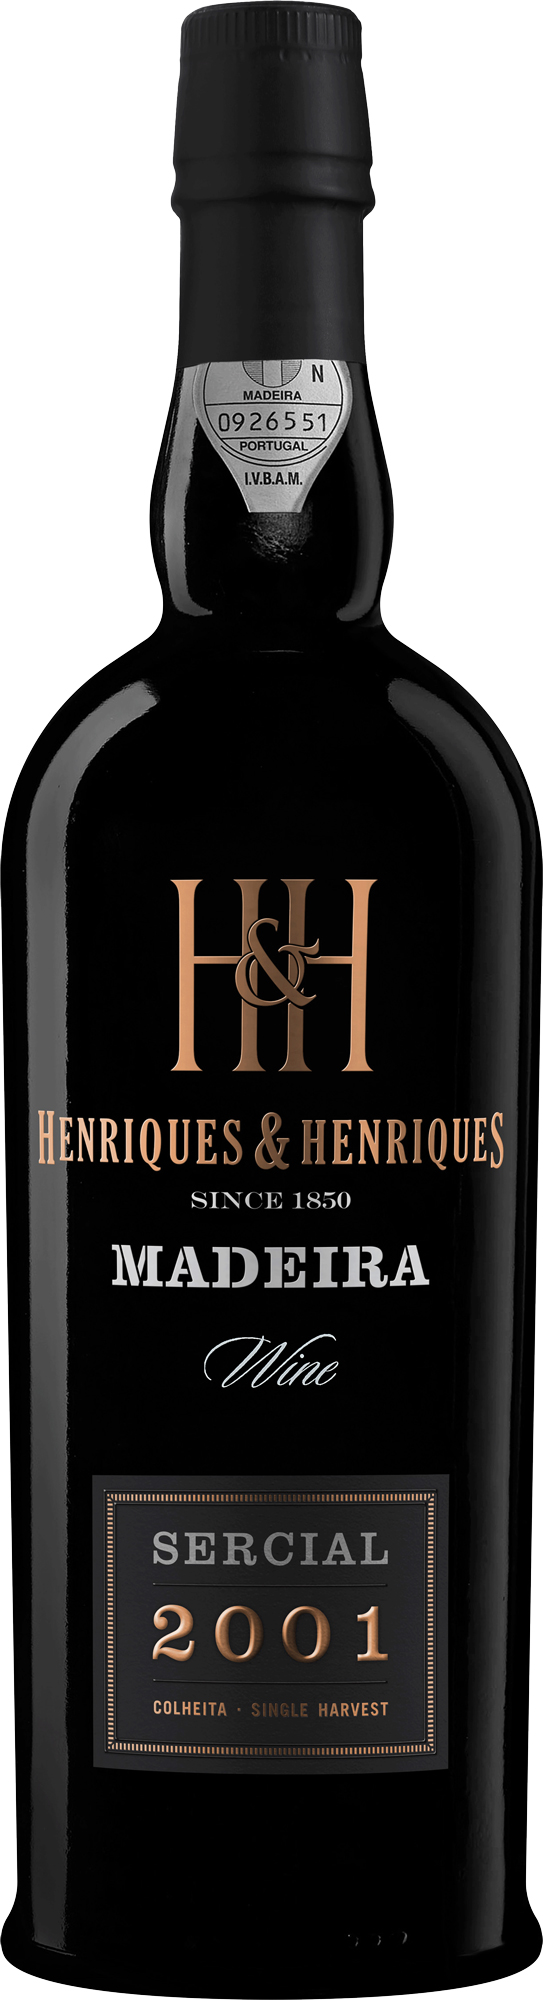 H&H Sercial Single Harvest Madeira 2001